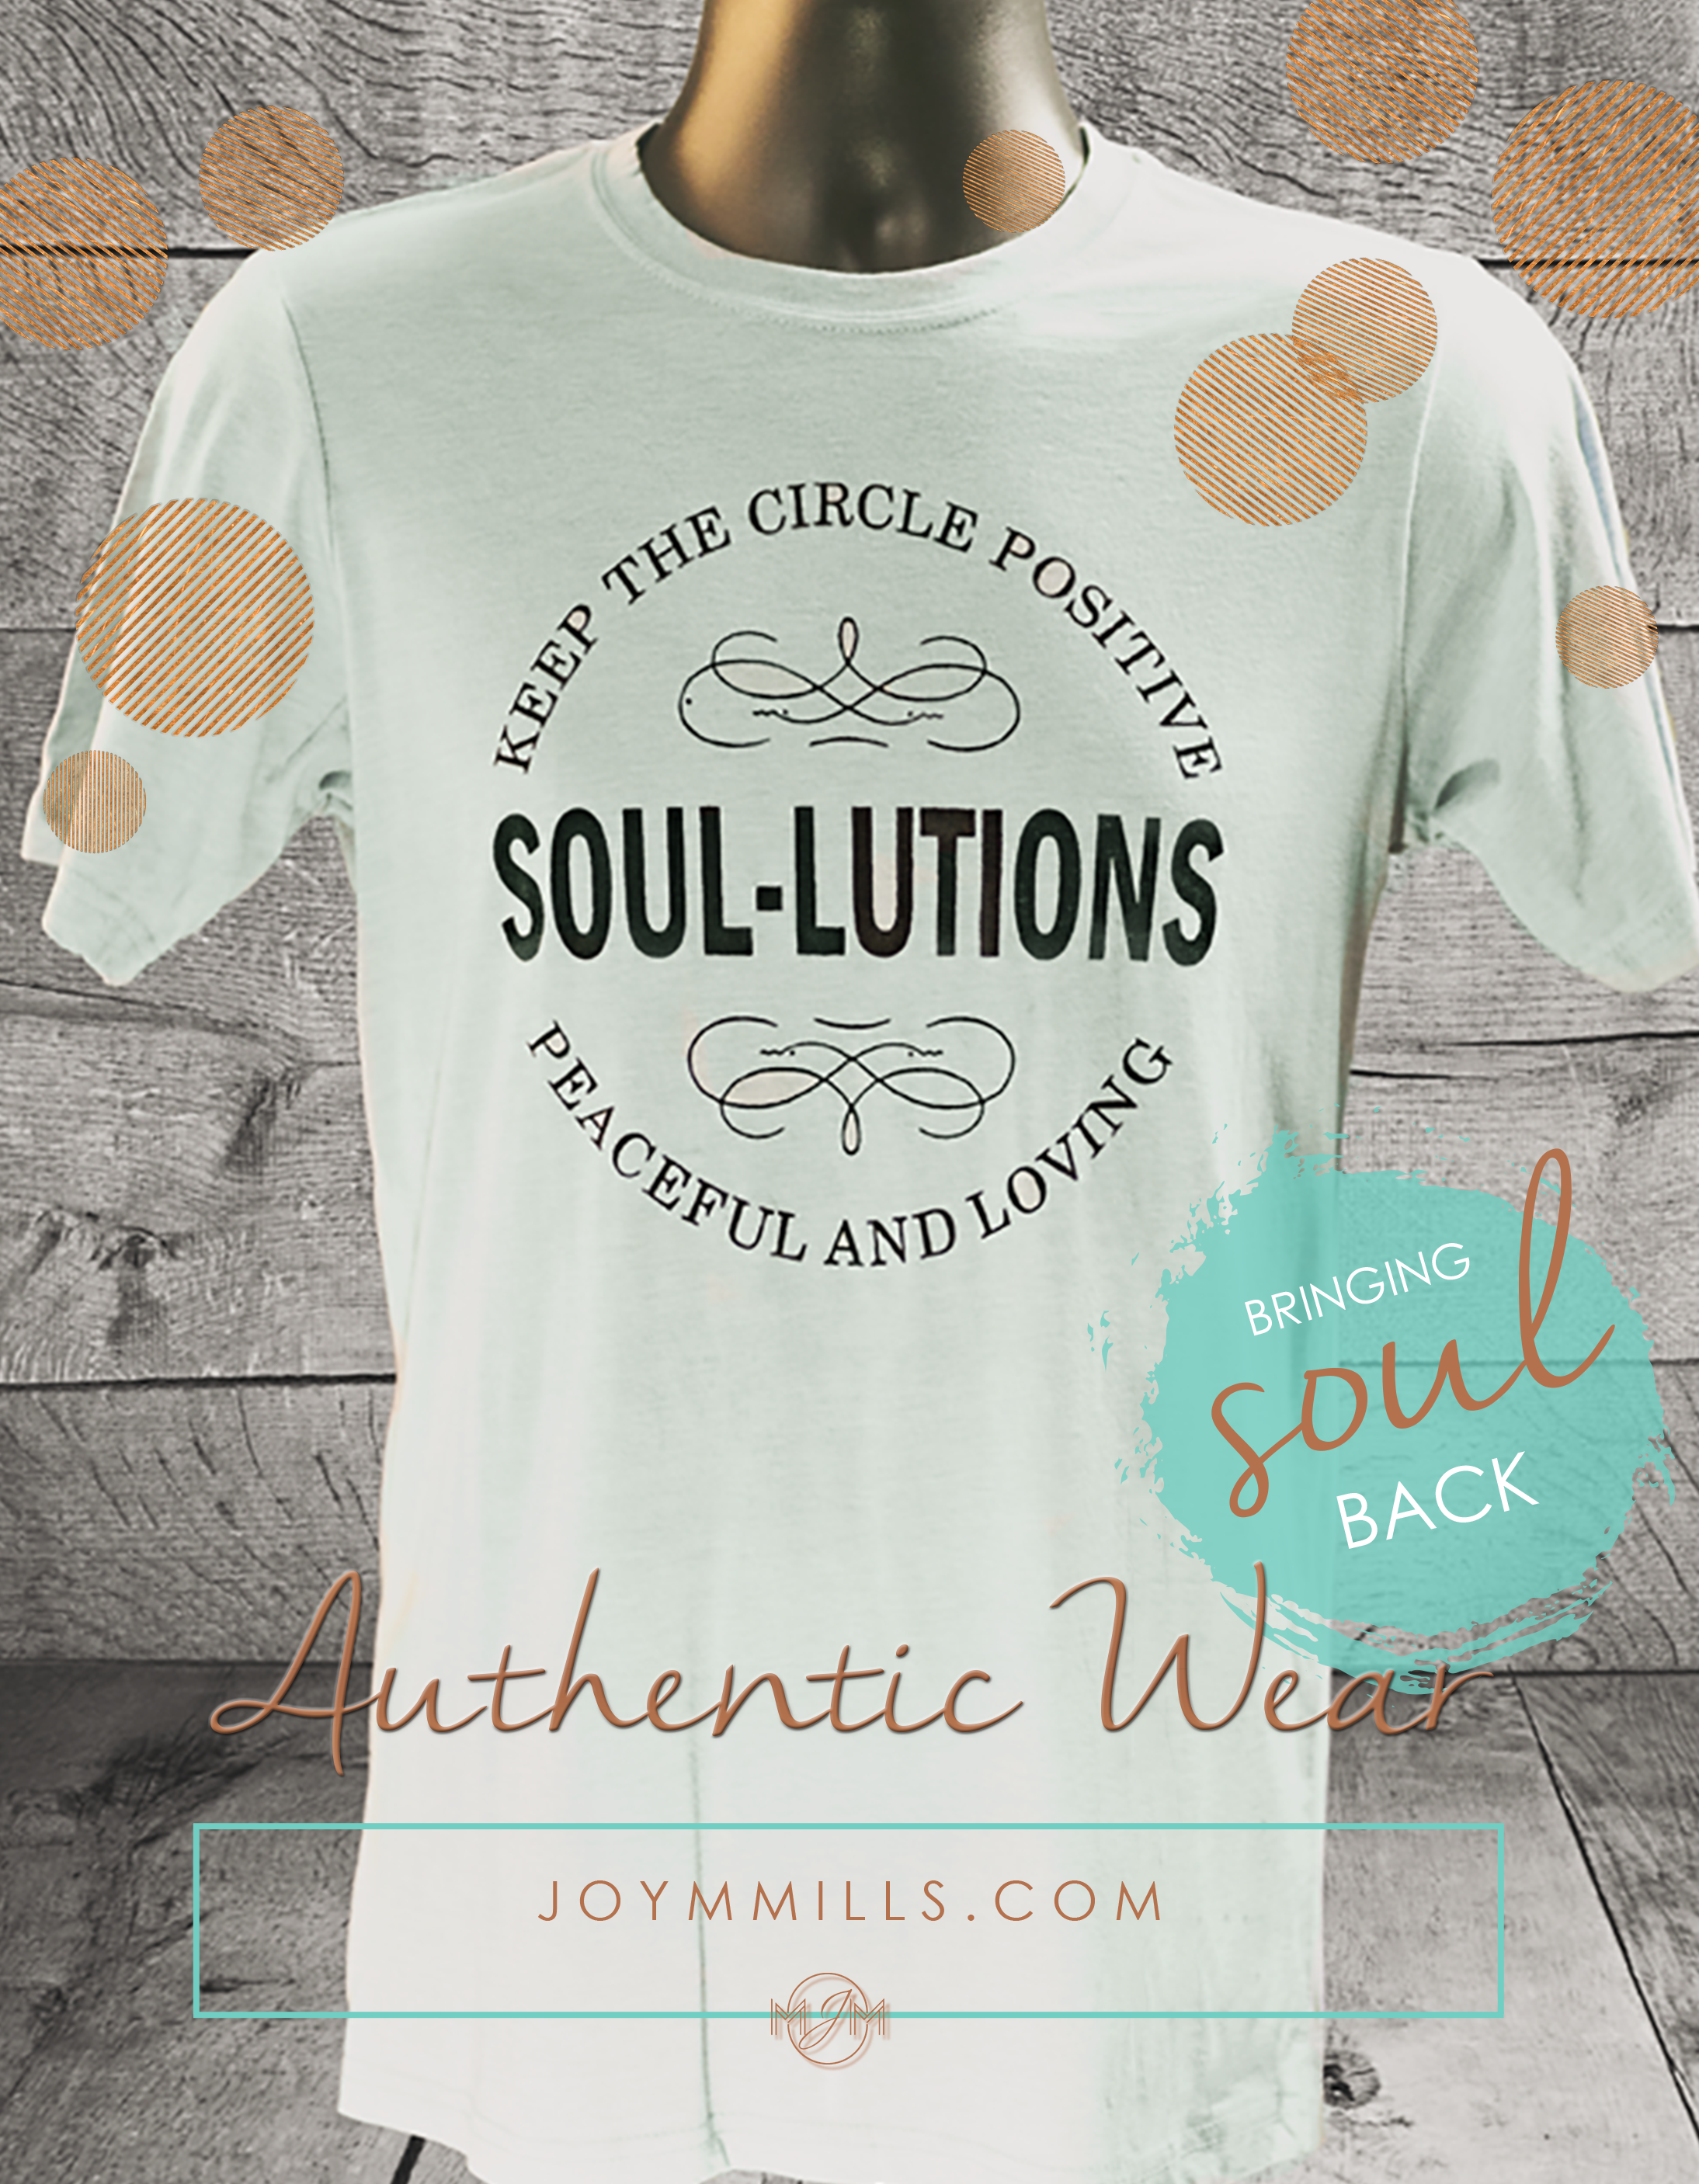 Soul-Lutions Apparel